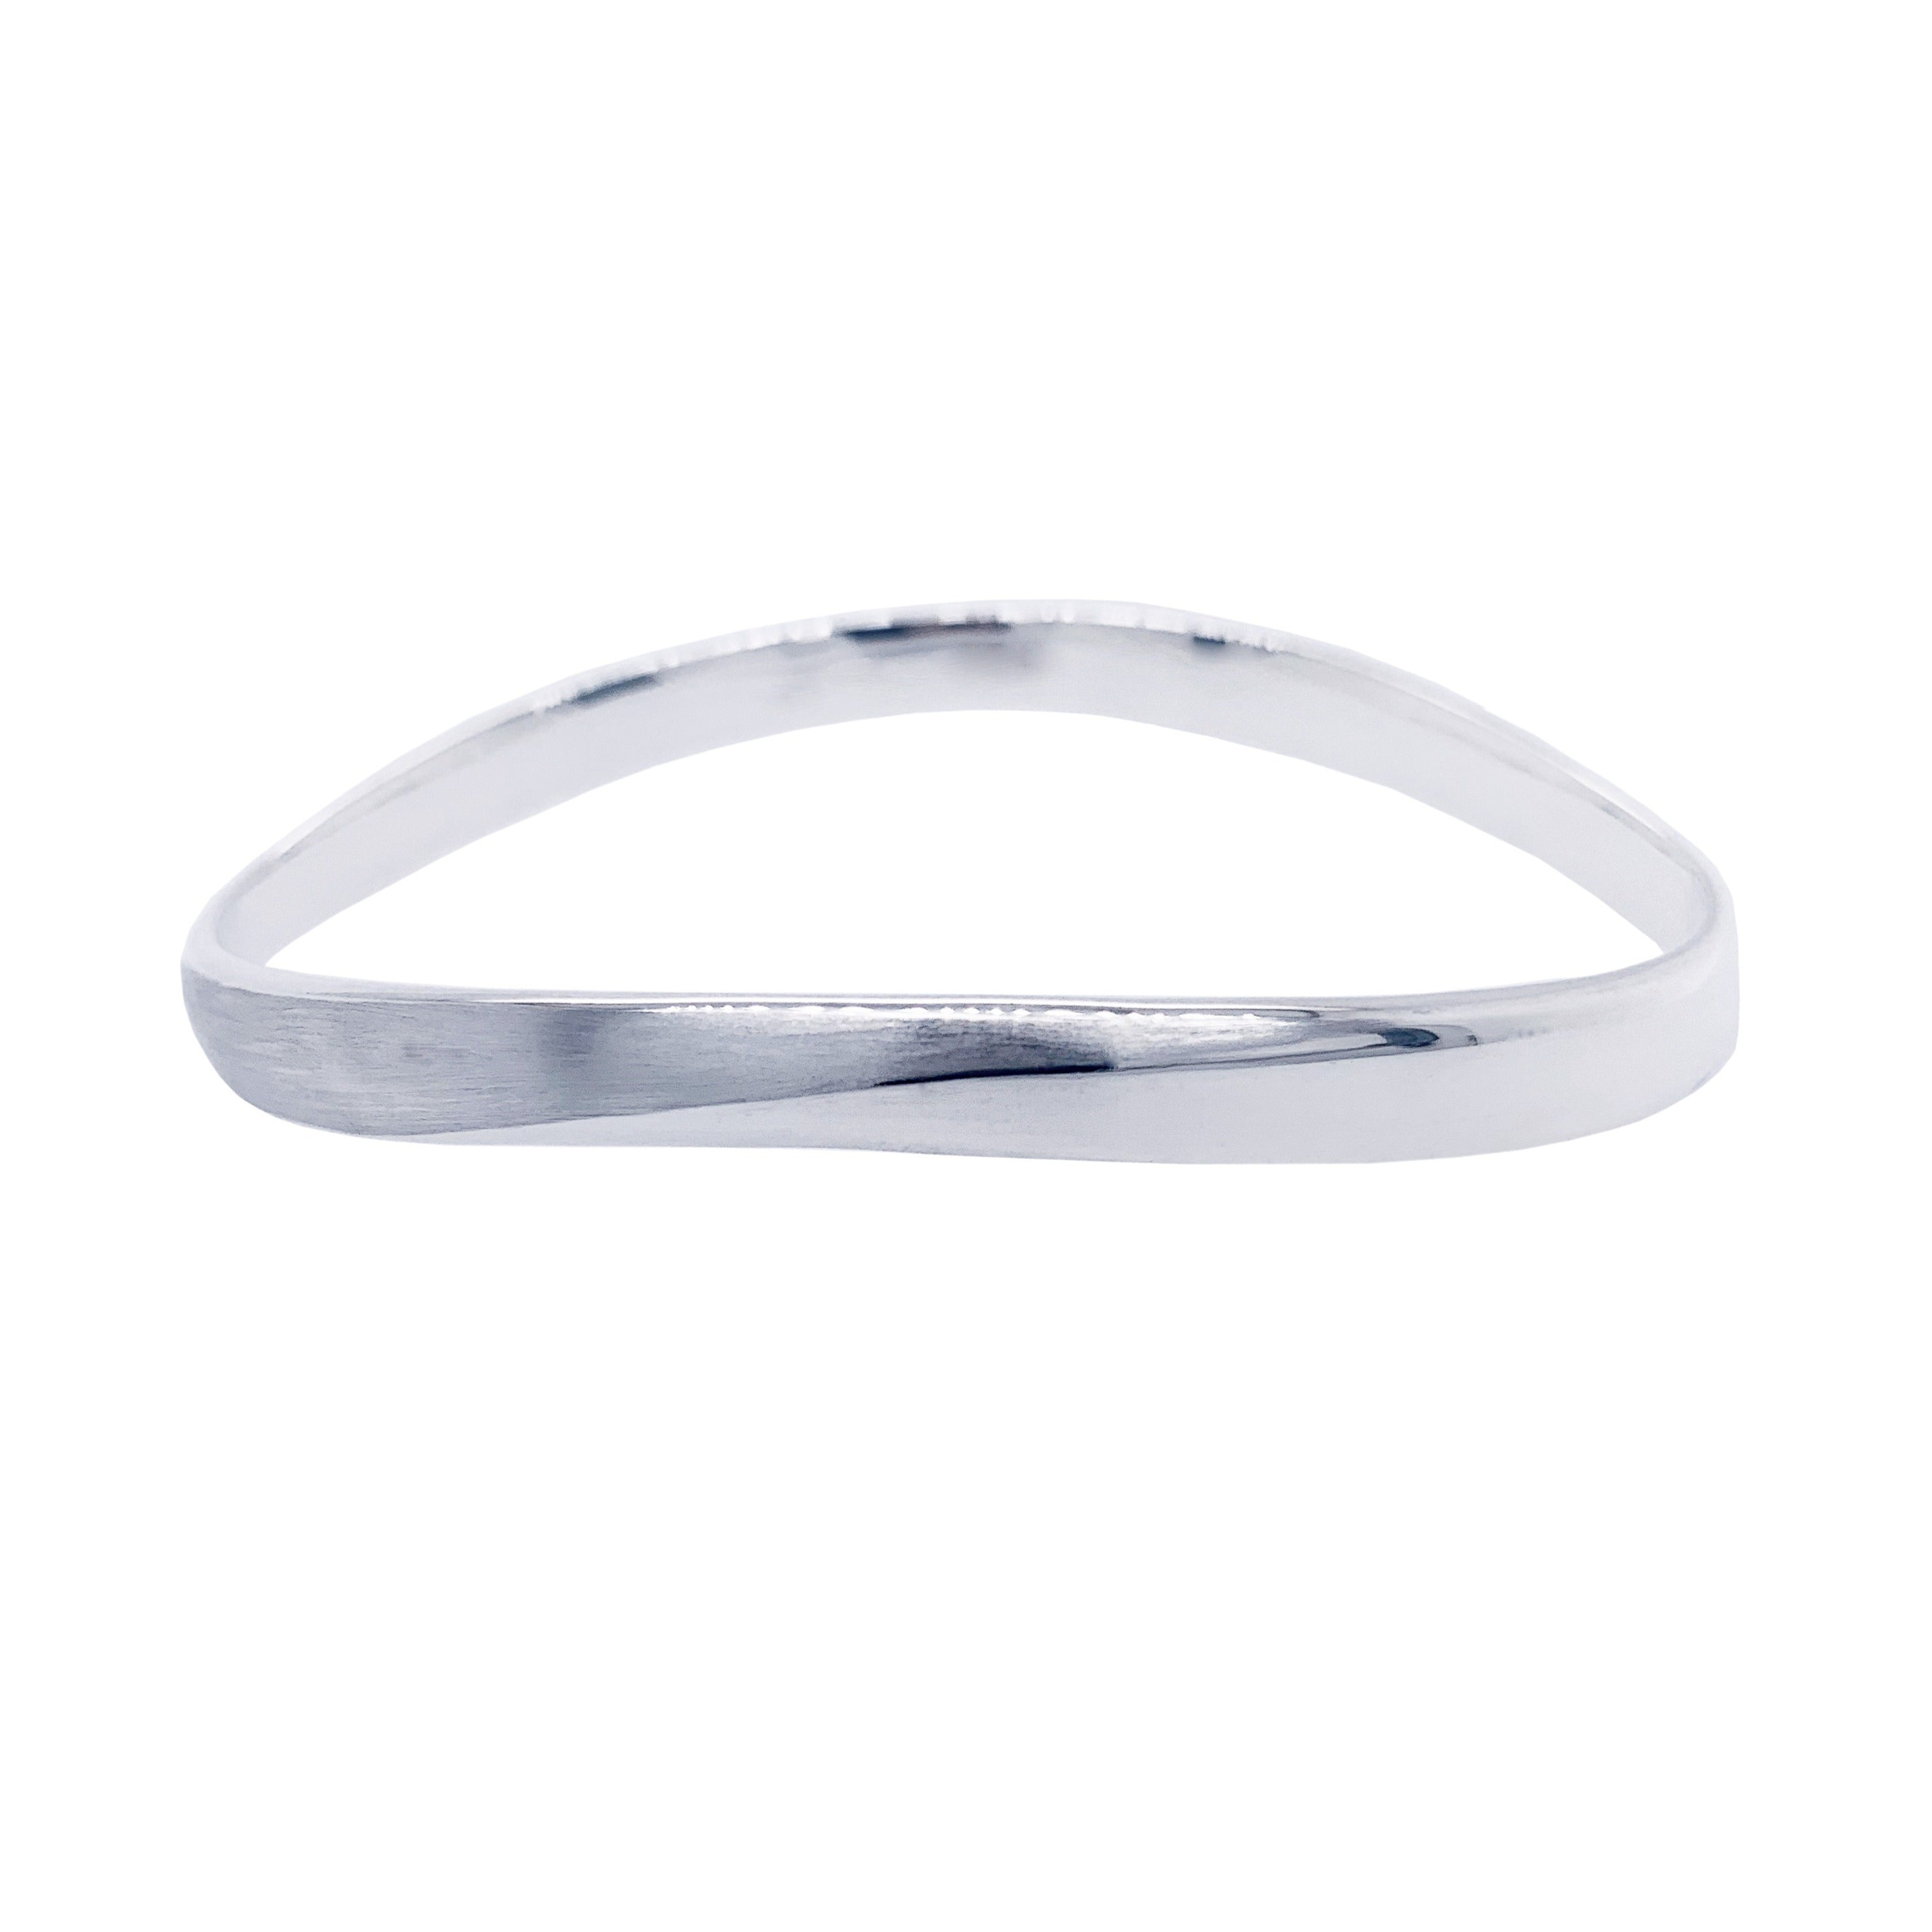 Silver Twisted Curve Oval Bangle